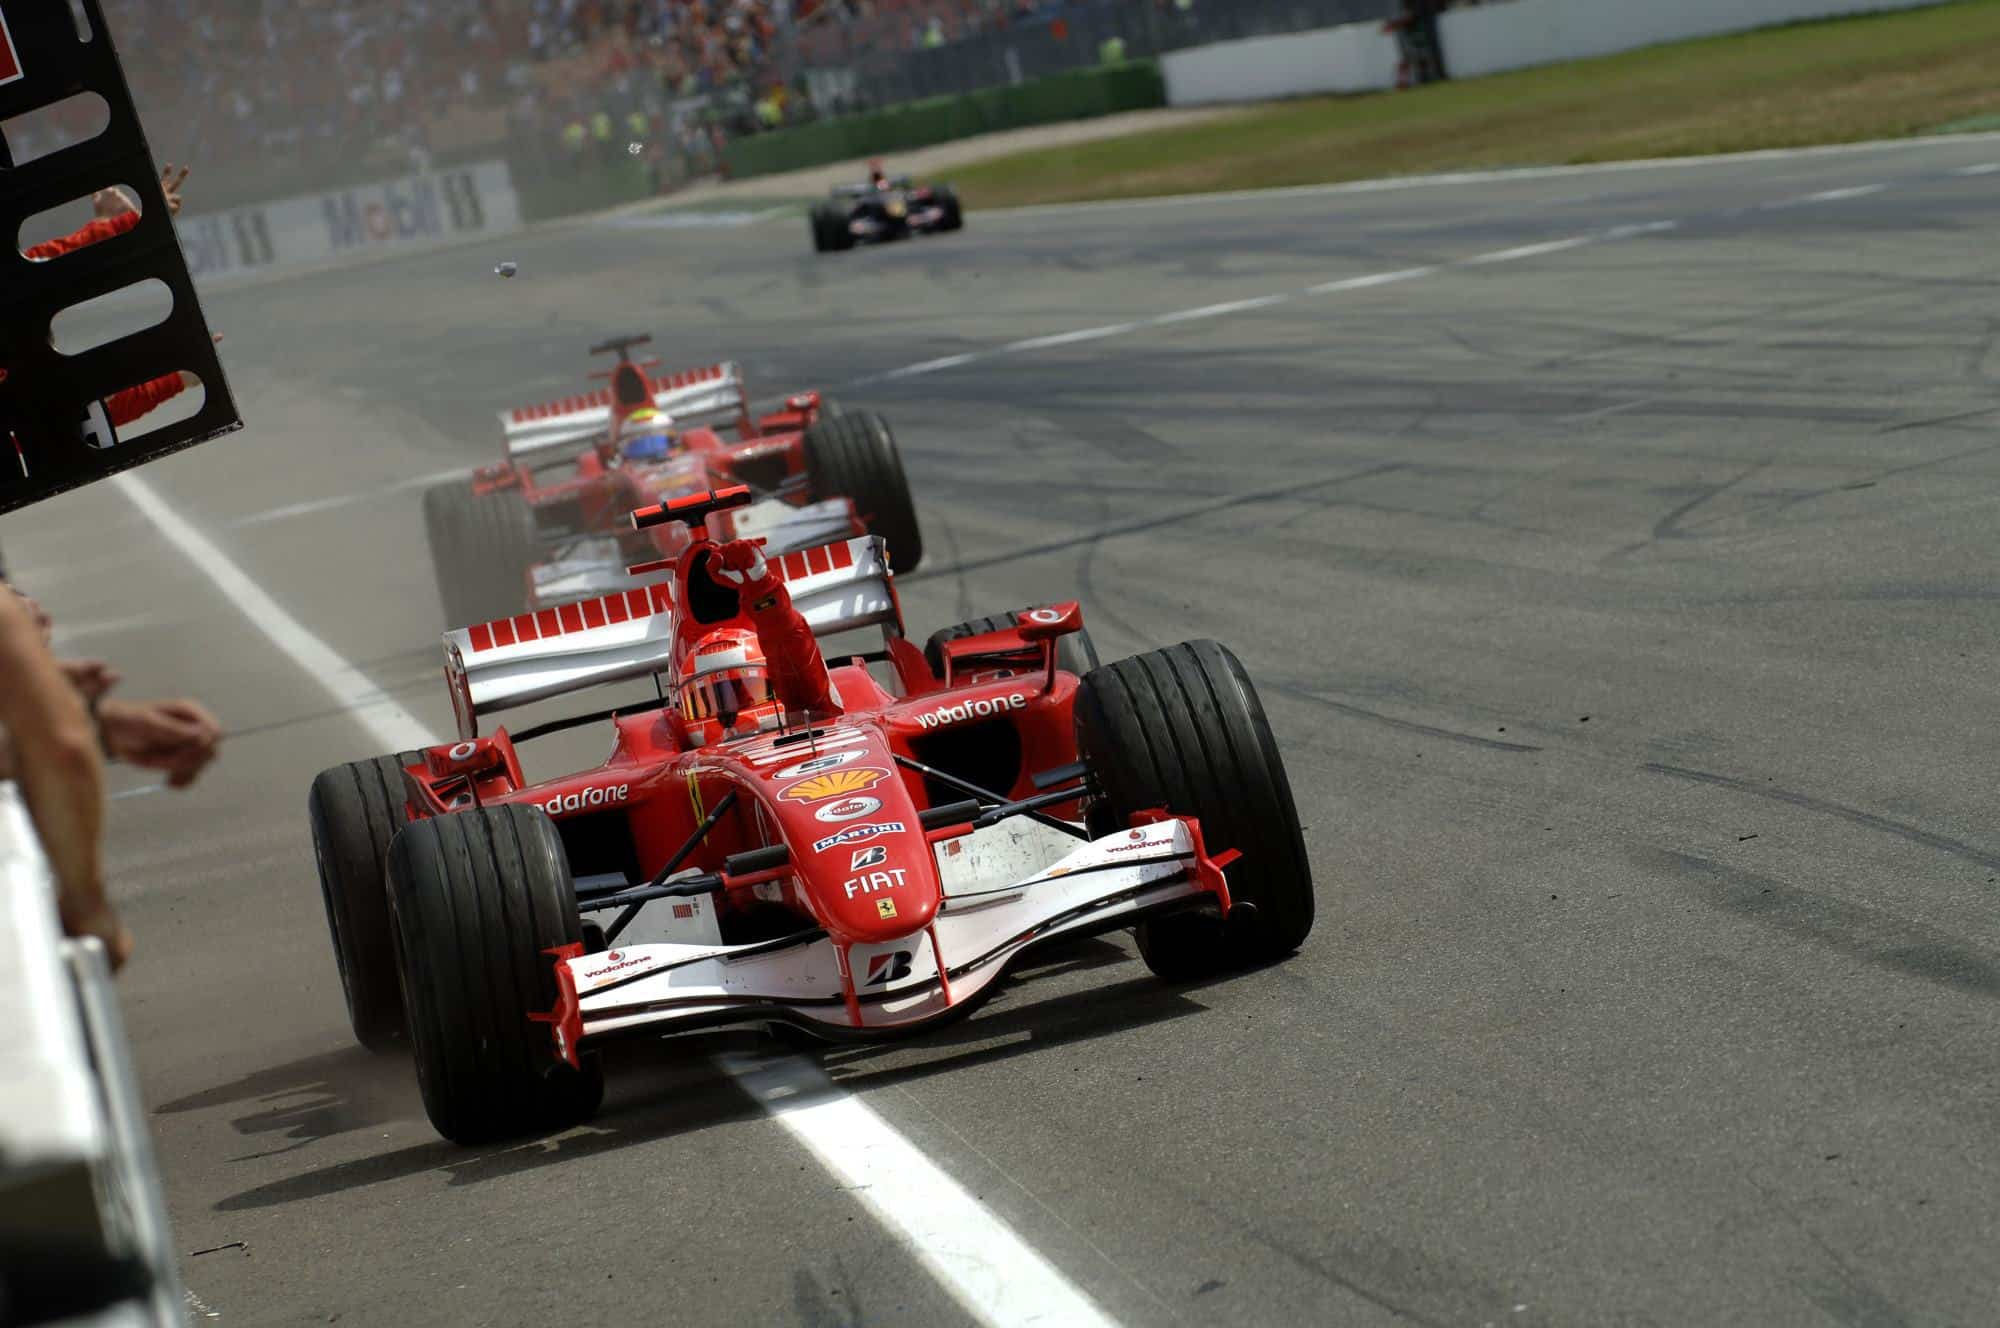 Michael Schumacher Felipe Massa Ferrari F248F1 F1 2006 German GP victory Photo Ferrari